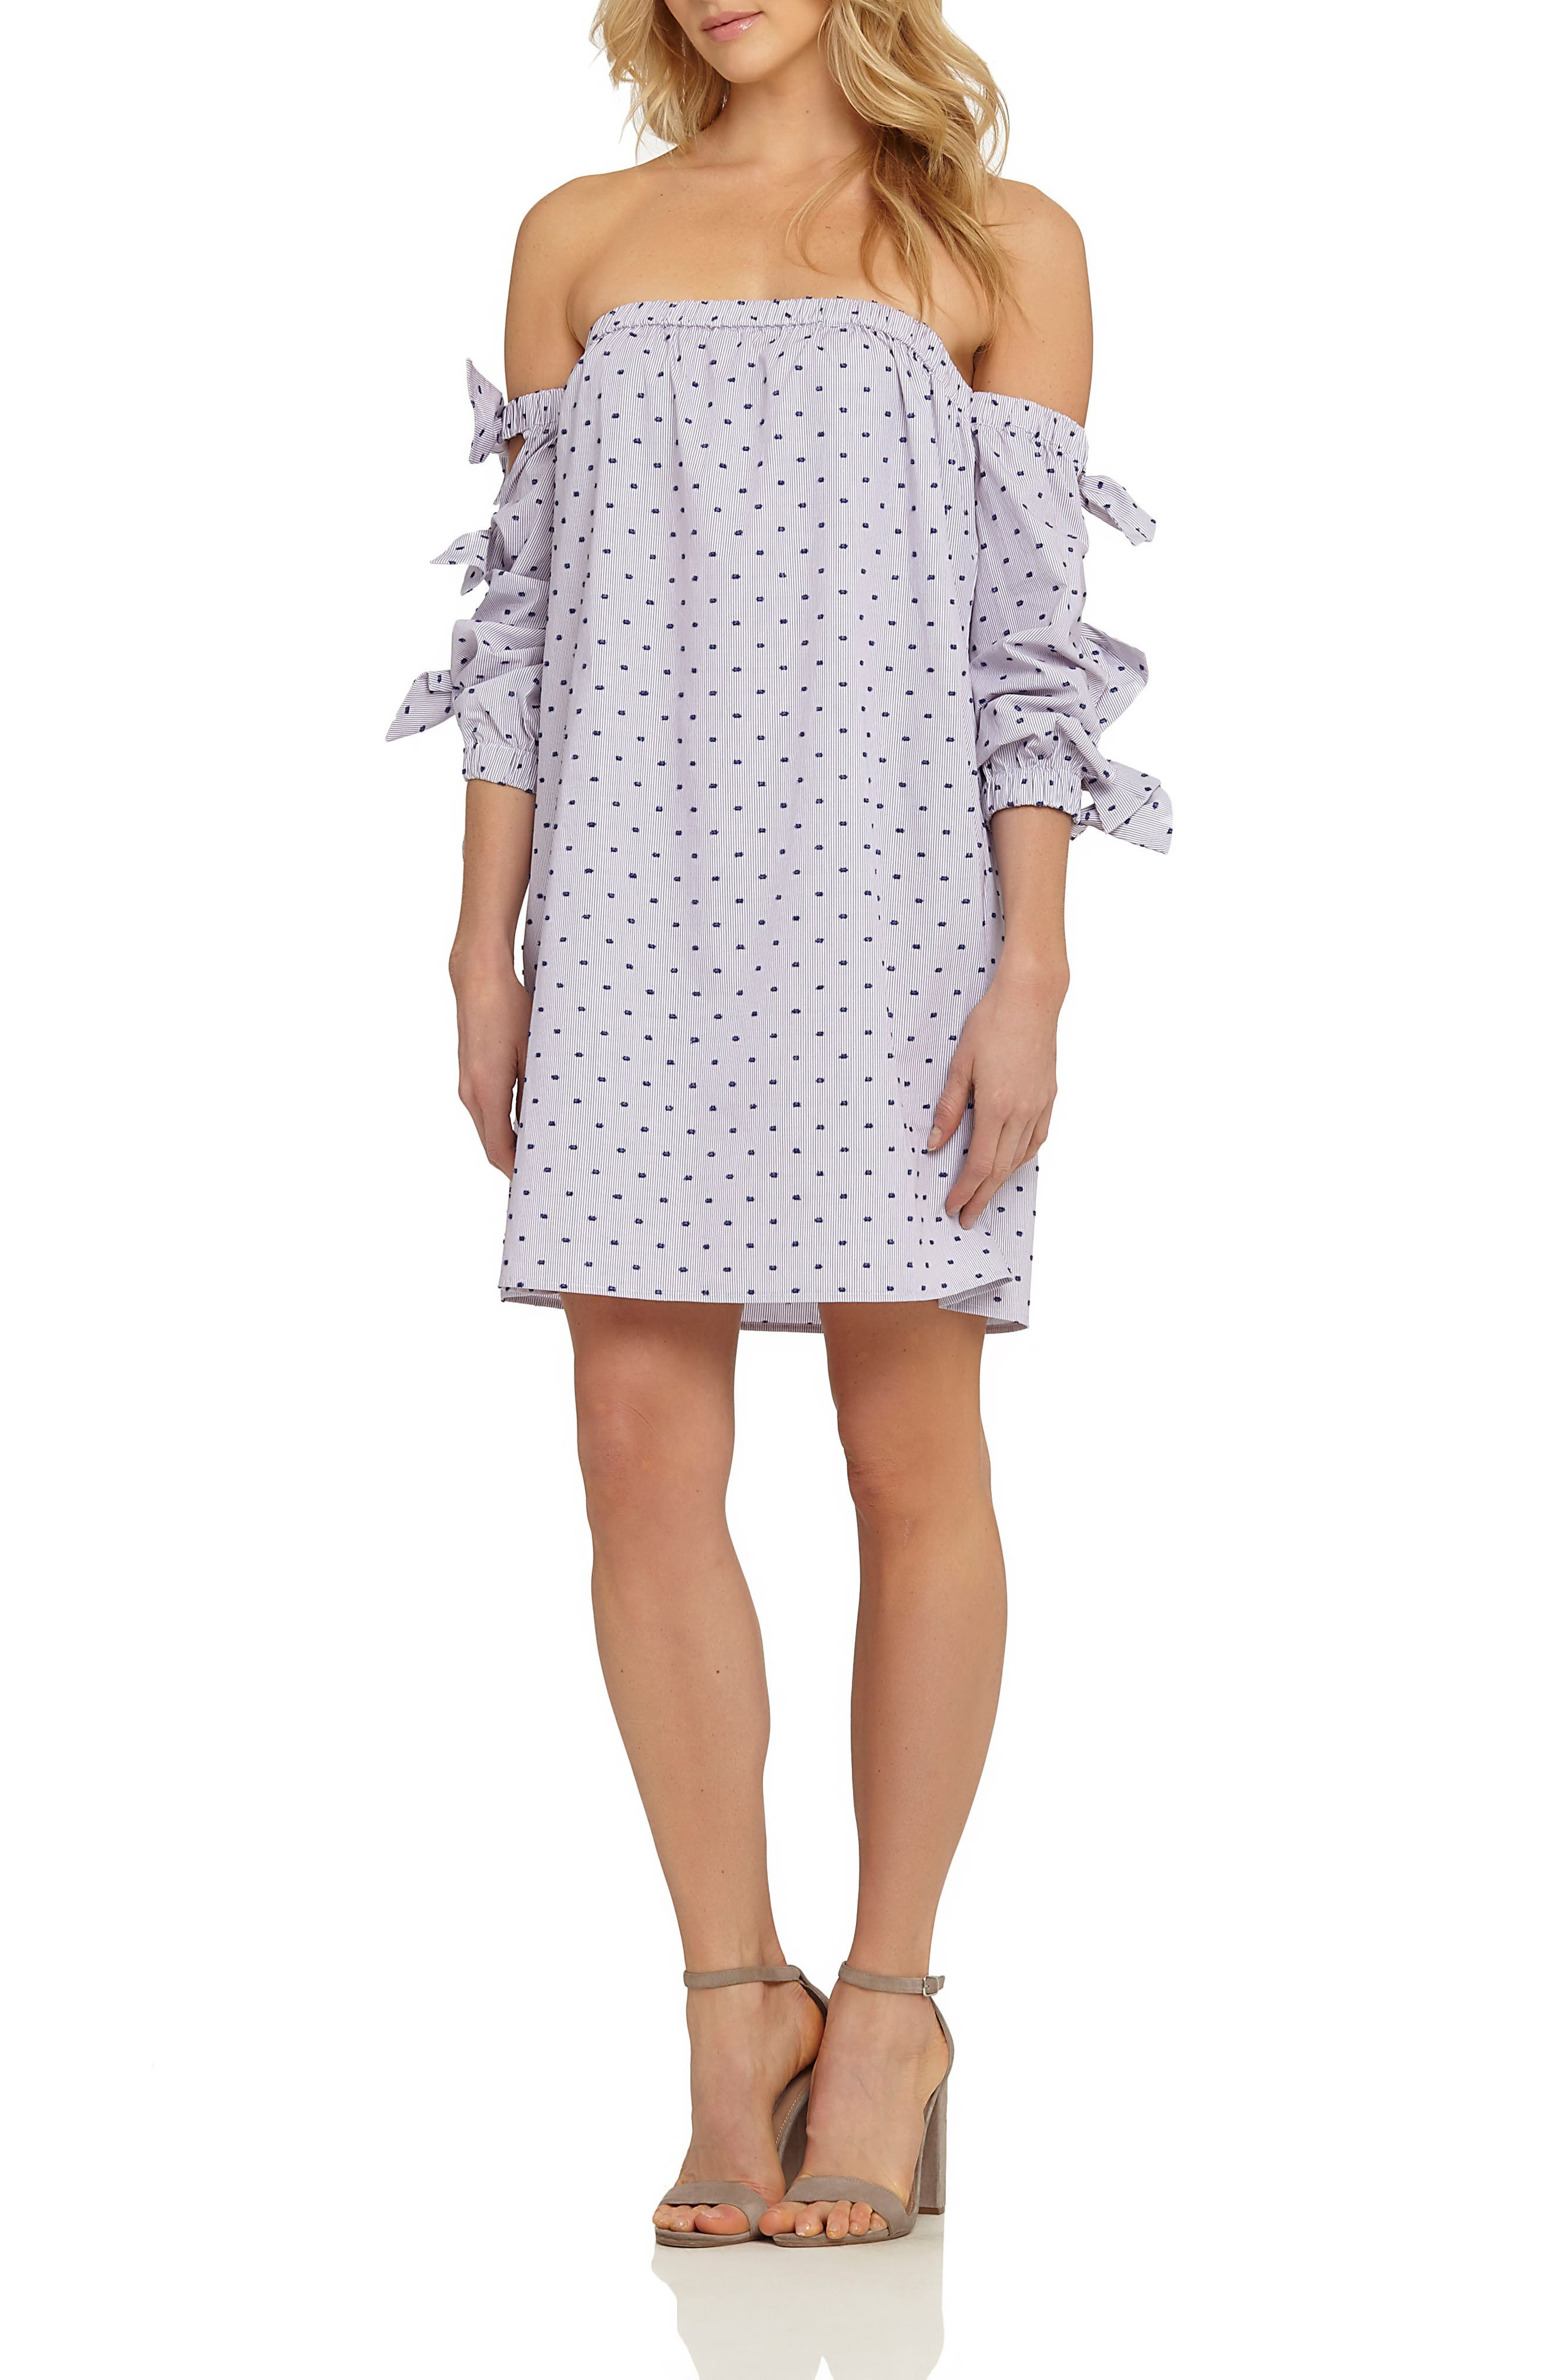 CeCe Kellen Cotton Shift Dress